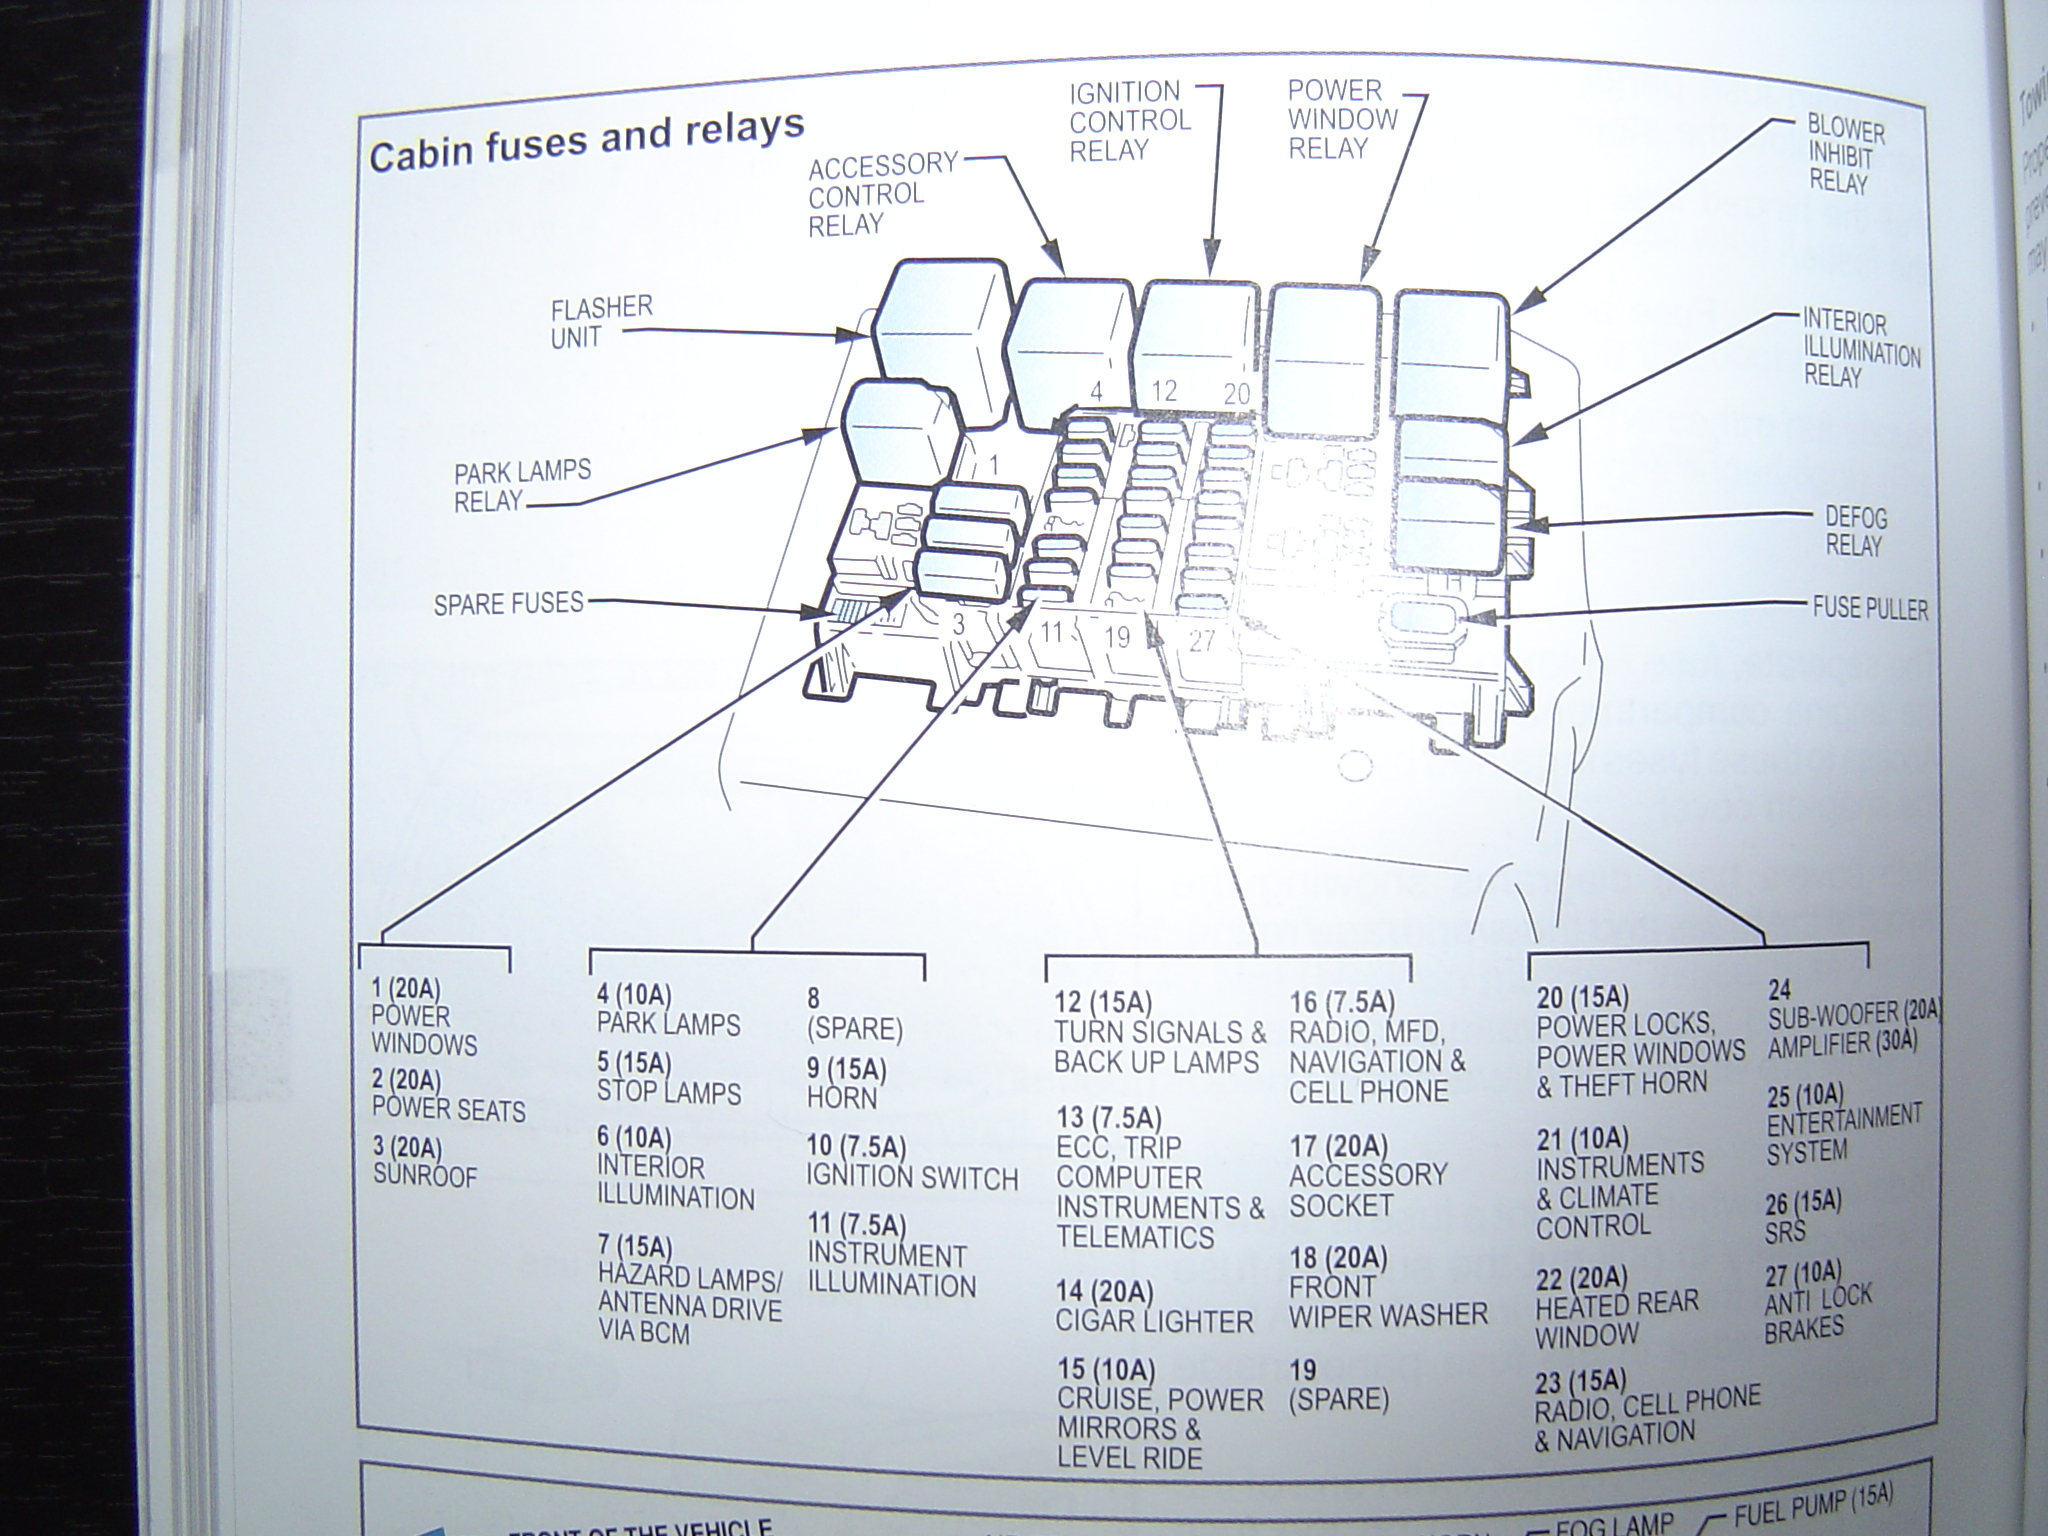 VY_CABIN_FUSEBOX cabin fuse box diagrams ba bf vx vy vz ve ba fuse box diagram at gsmportal.co